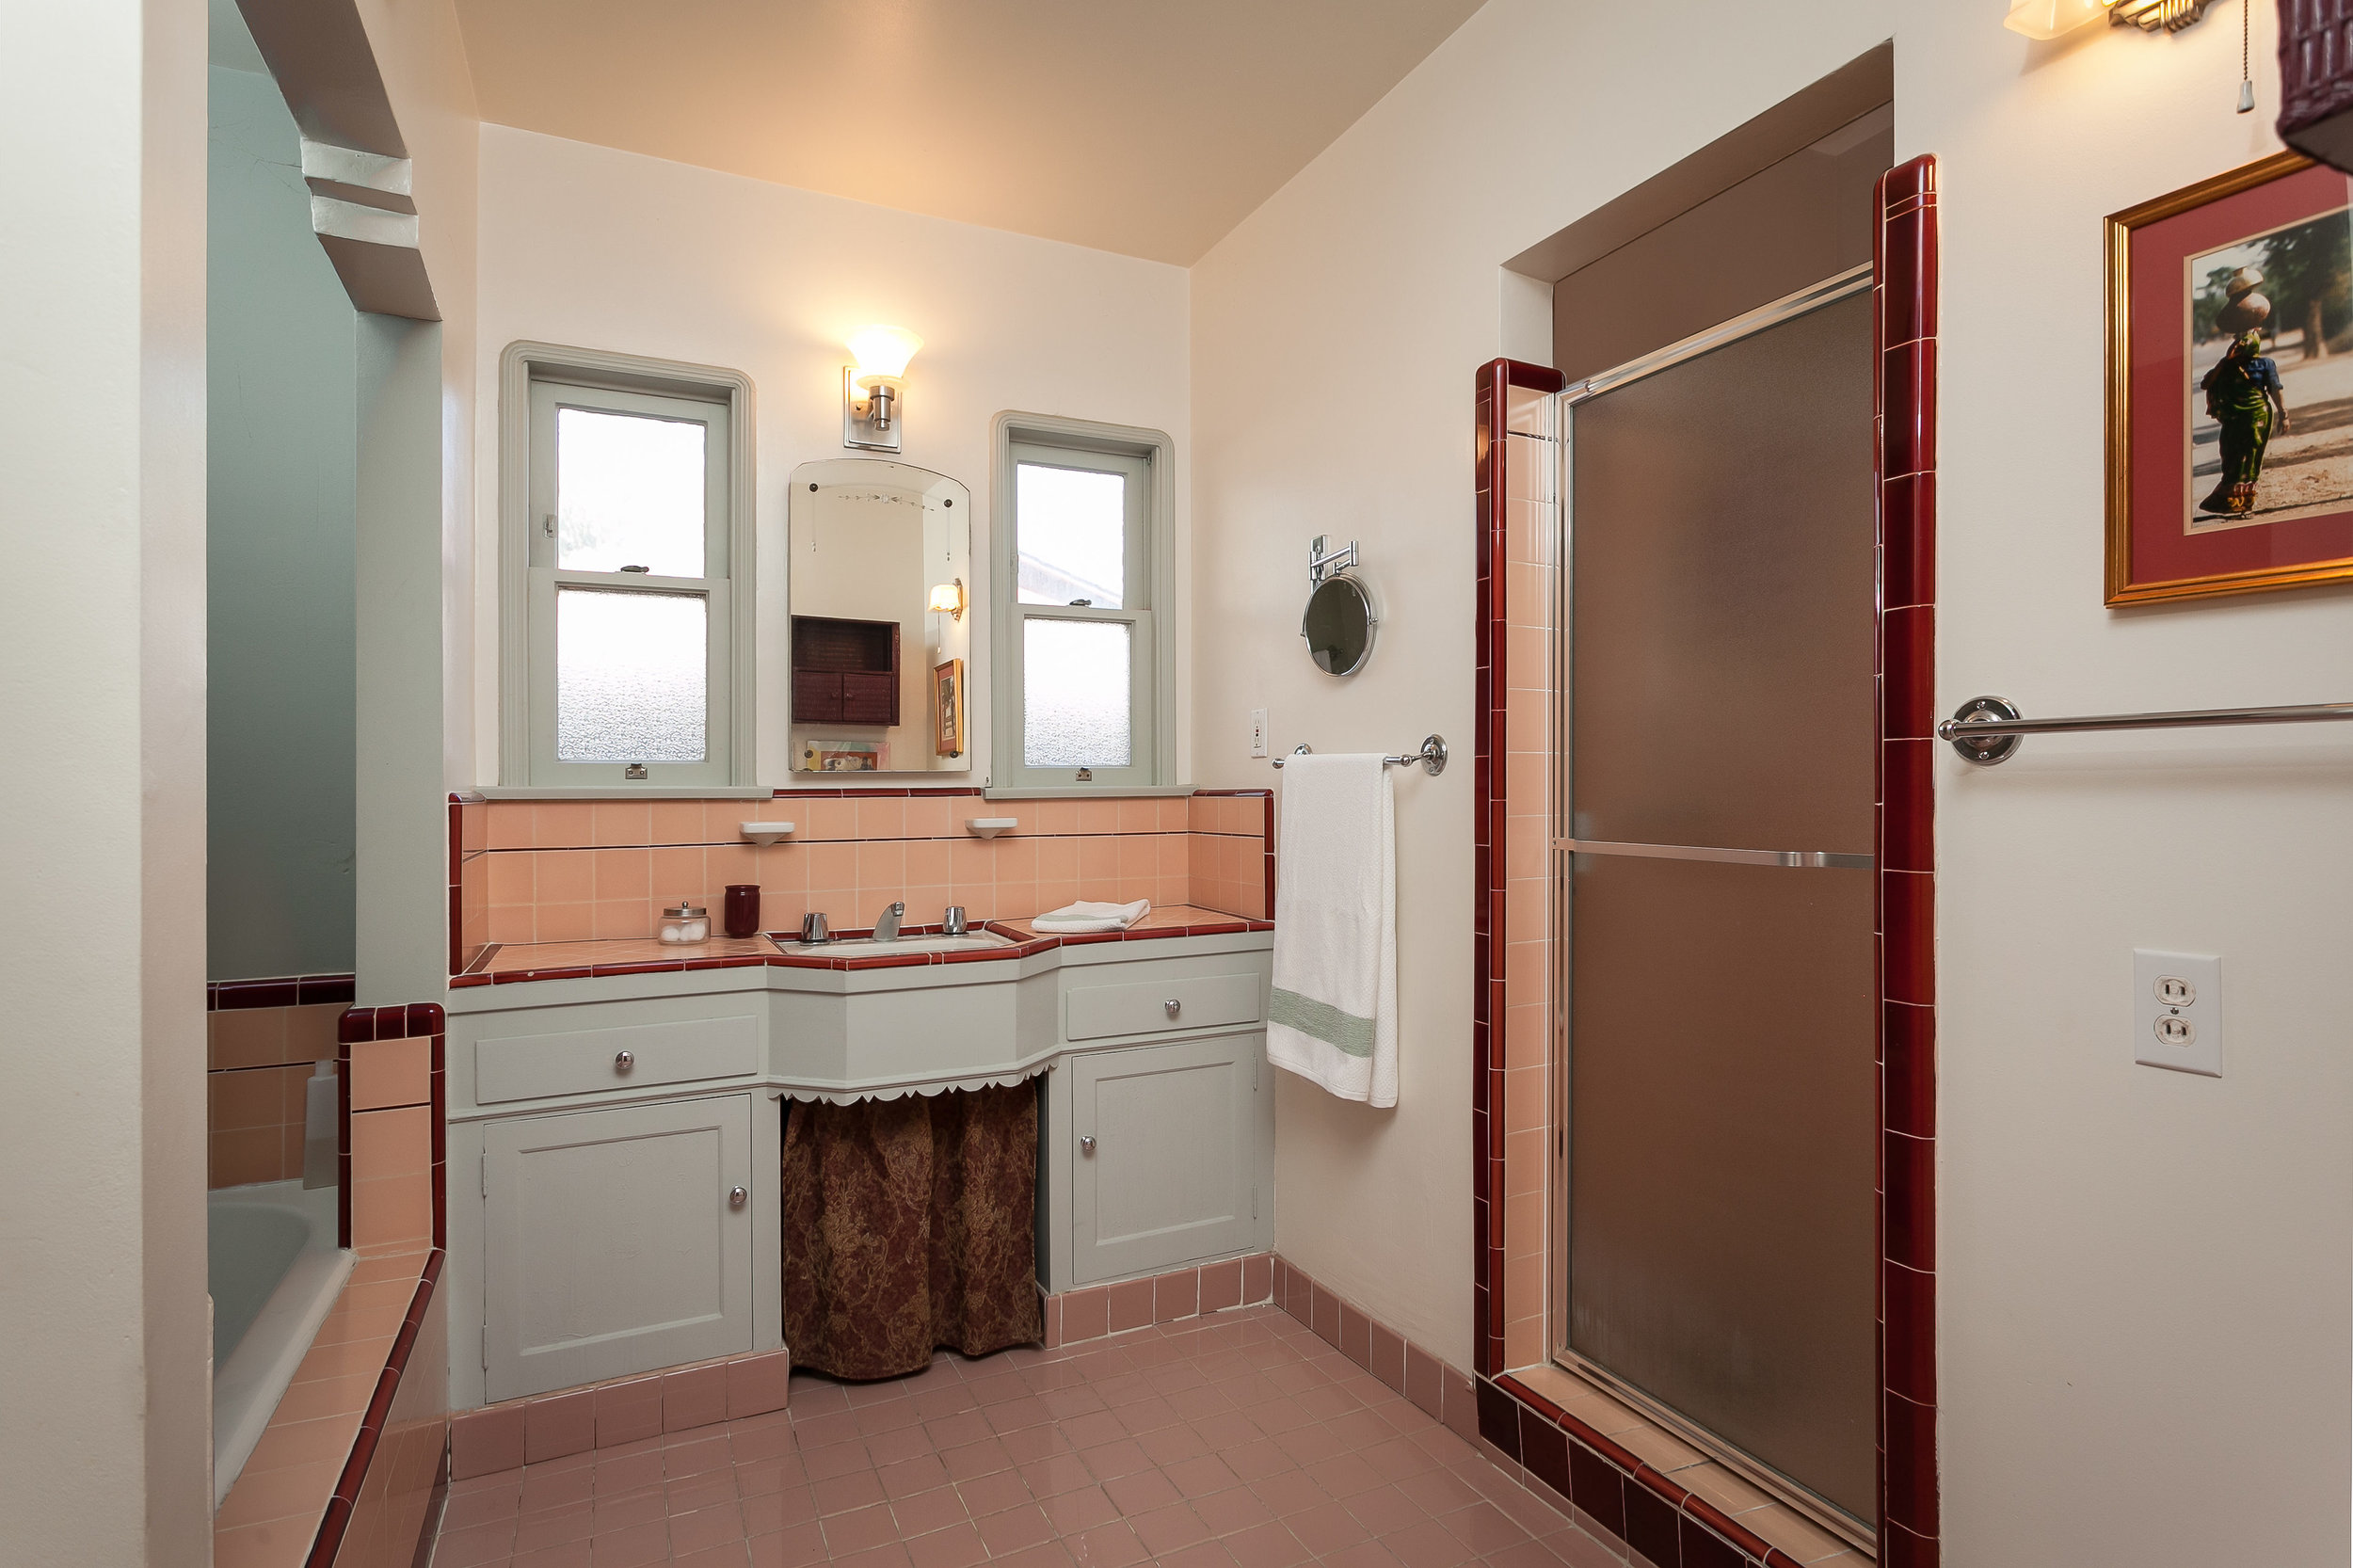 4107 Goodland Ave Studio City-print-017-14-Bathroom-3865x2575-300dpi.jpg